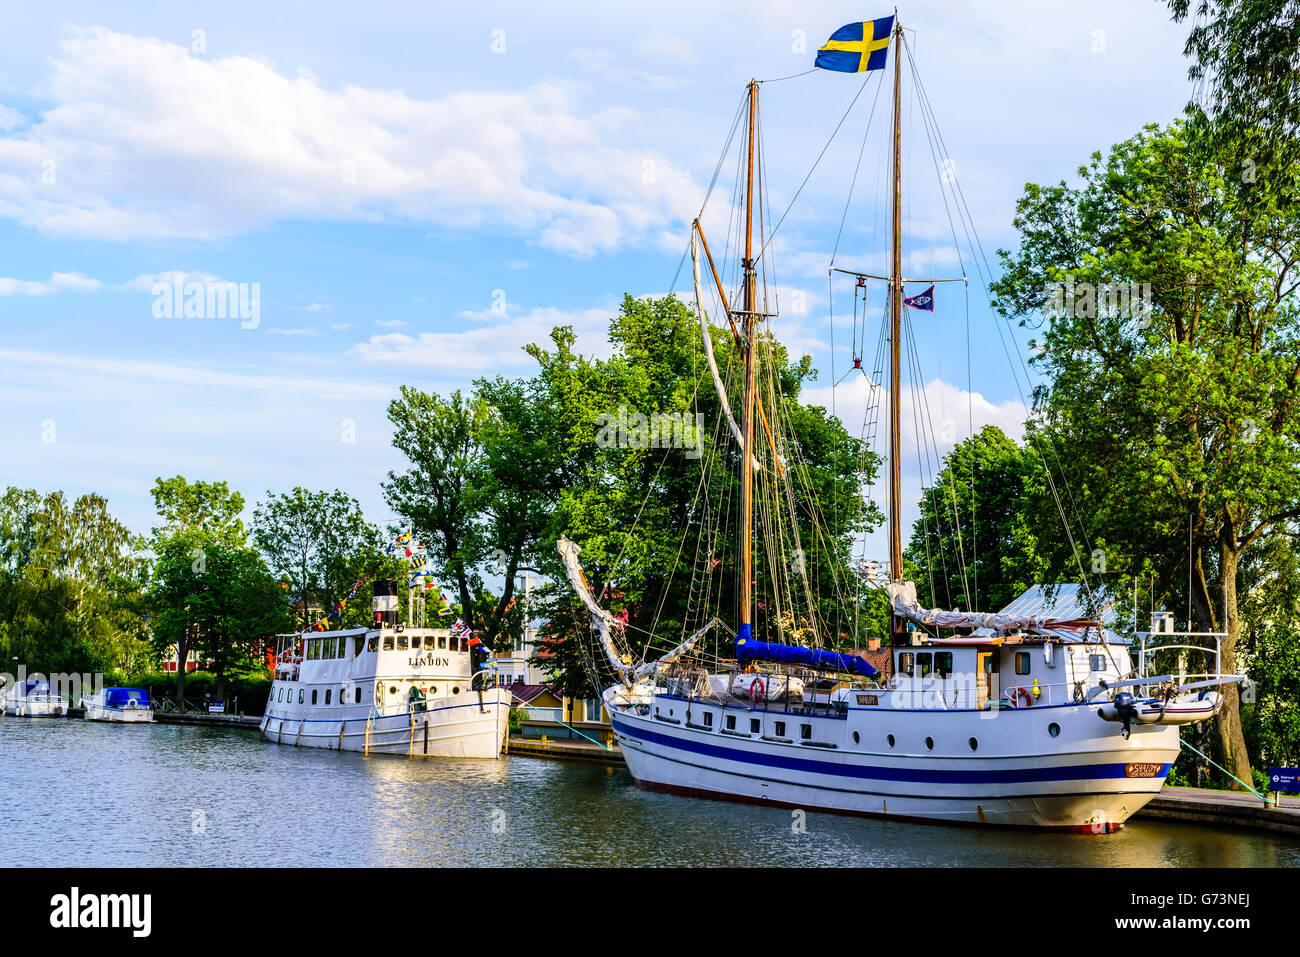 Soderkoping, Sweden - June 19, 2016: The two boats Shalom (Christian missionary boat) and Lindon (passenger boat) - Stock Image